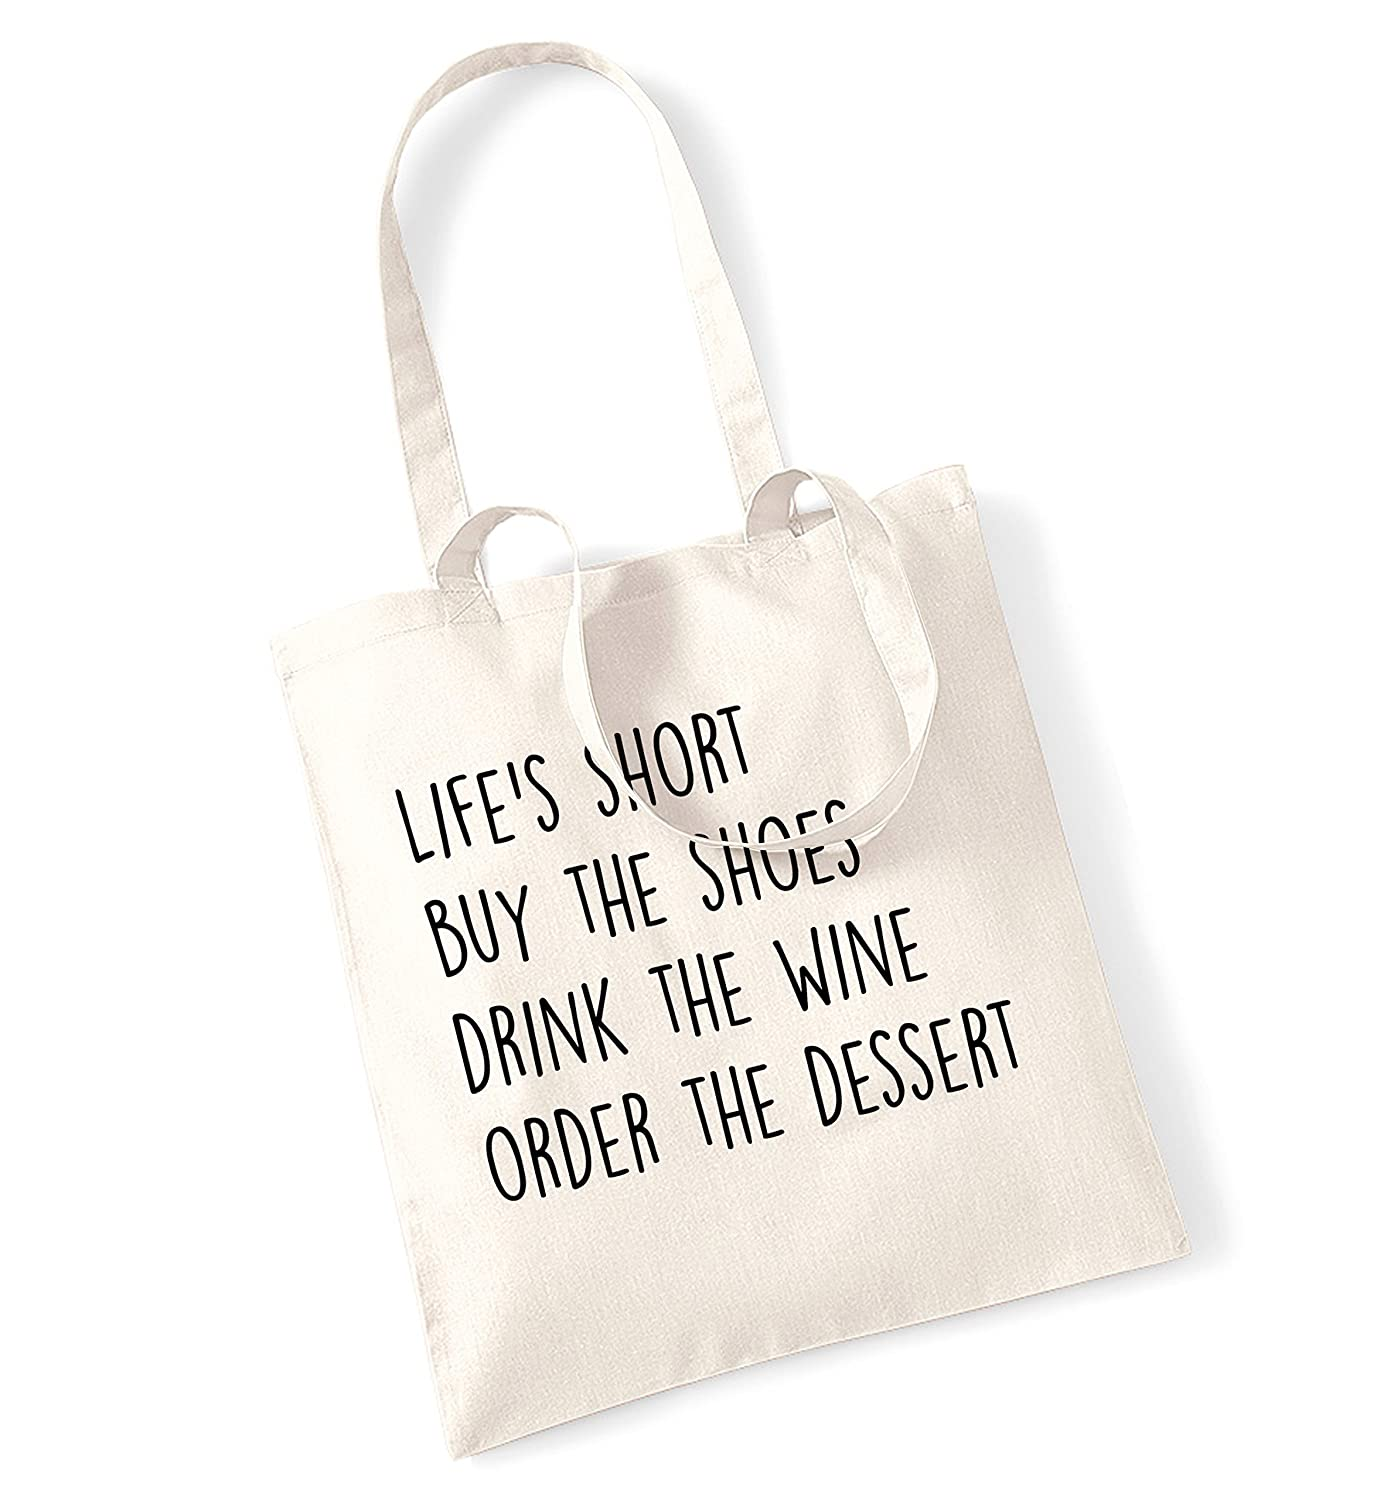 a6582a327ac87 Life's short buy the shoes drink the wine order the dessert tote bag ...